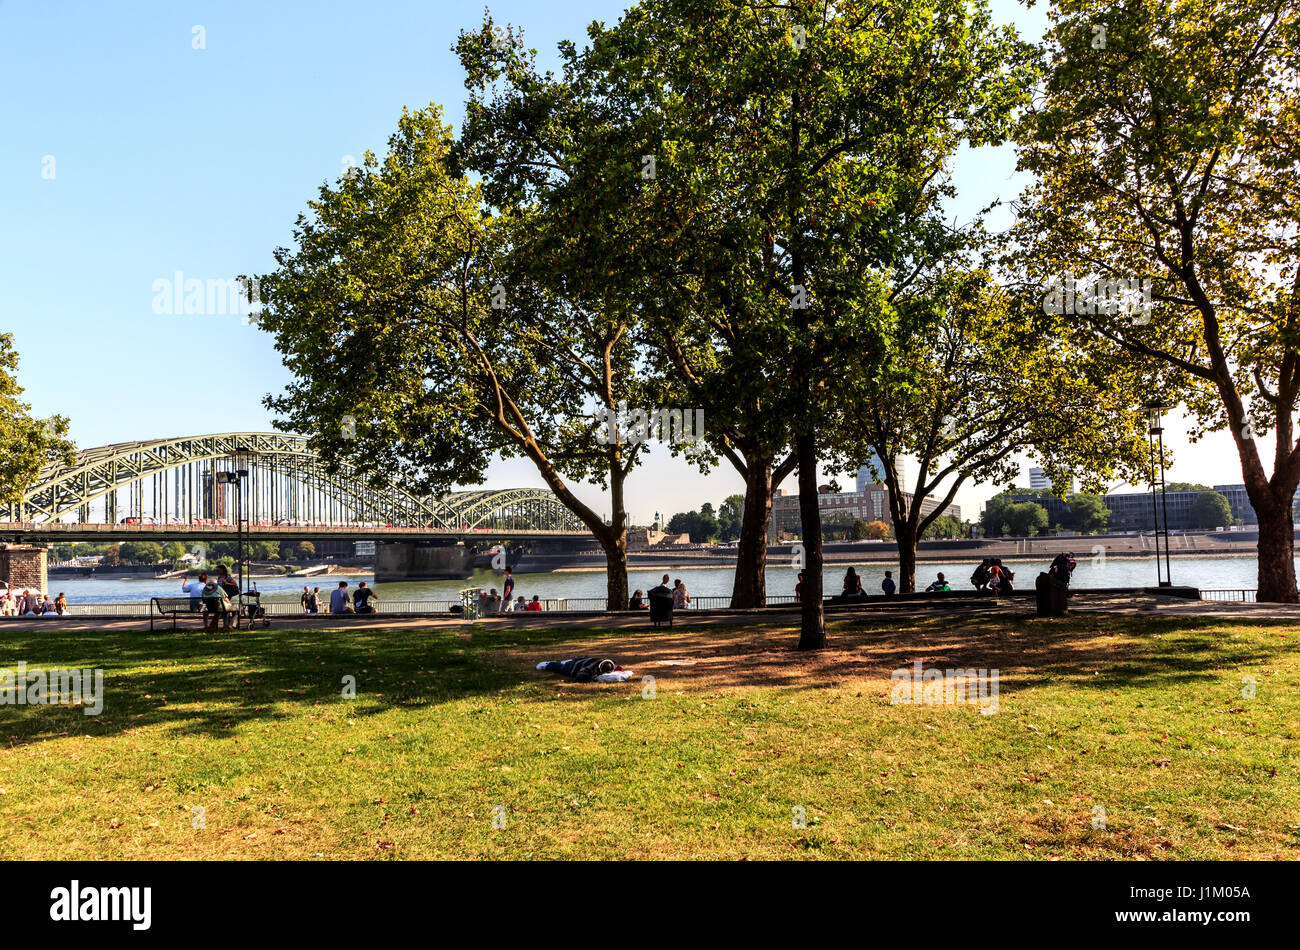 Landscape on the Rhine promenade in front of the Deutzer Bridge in Cologne, Germany Stock Photo